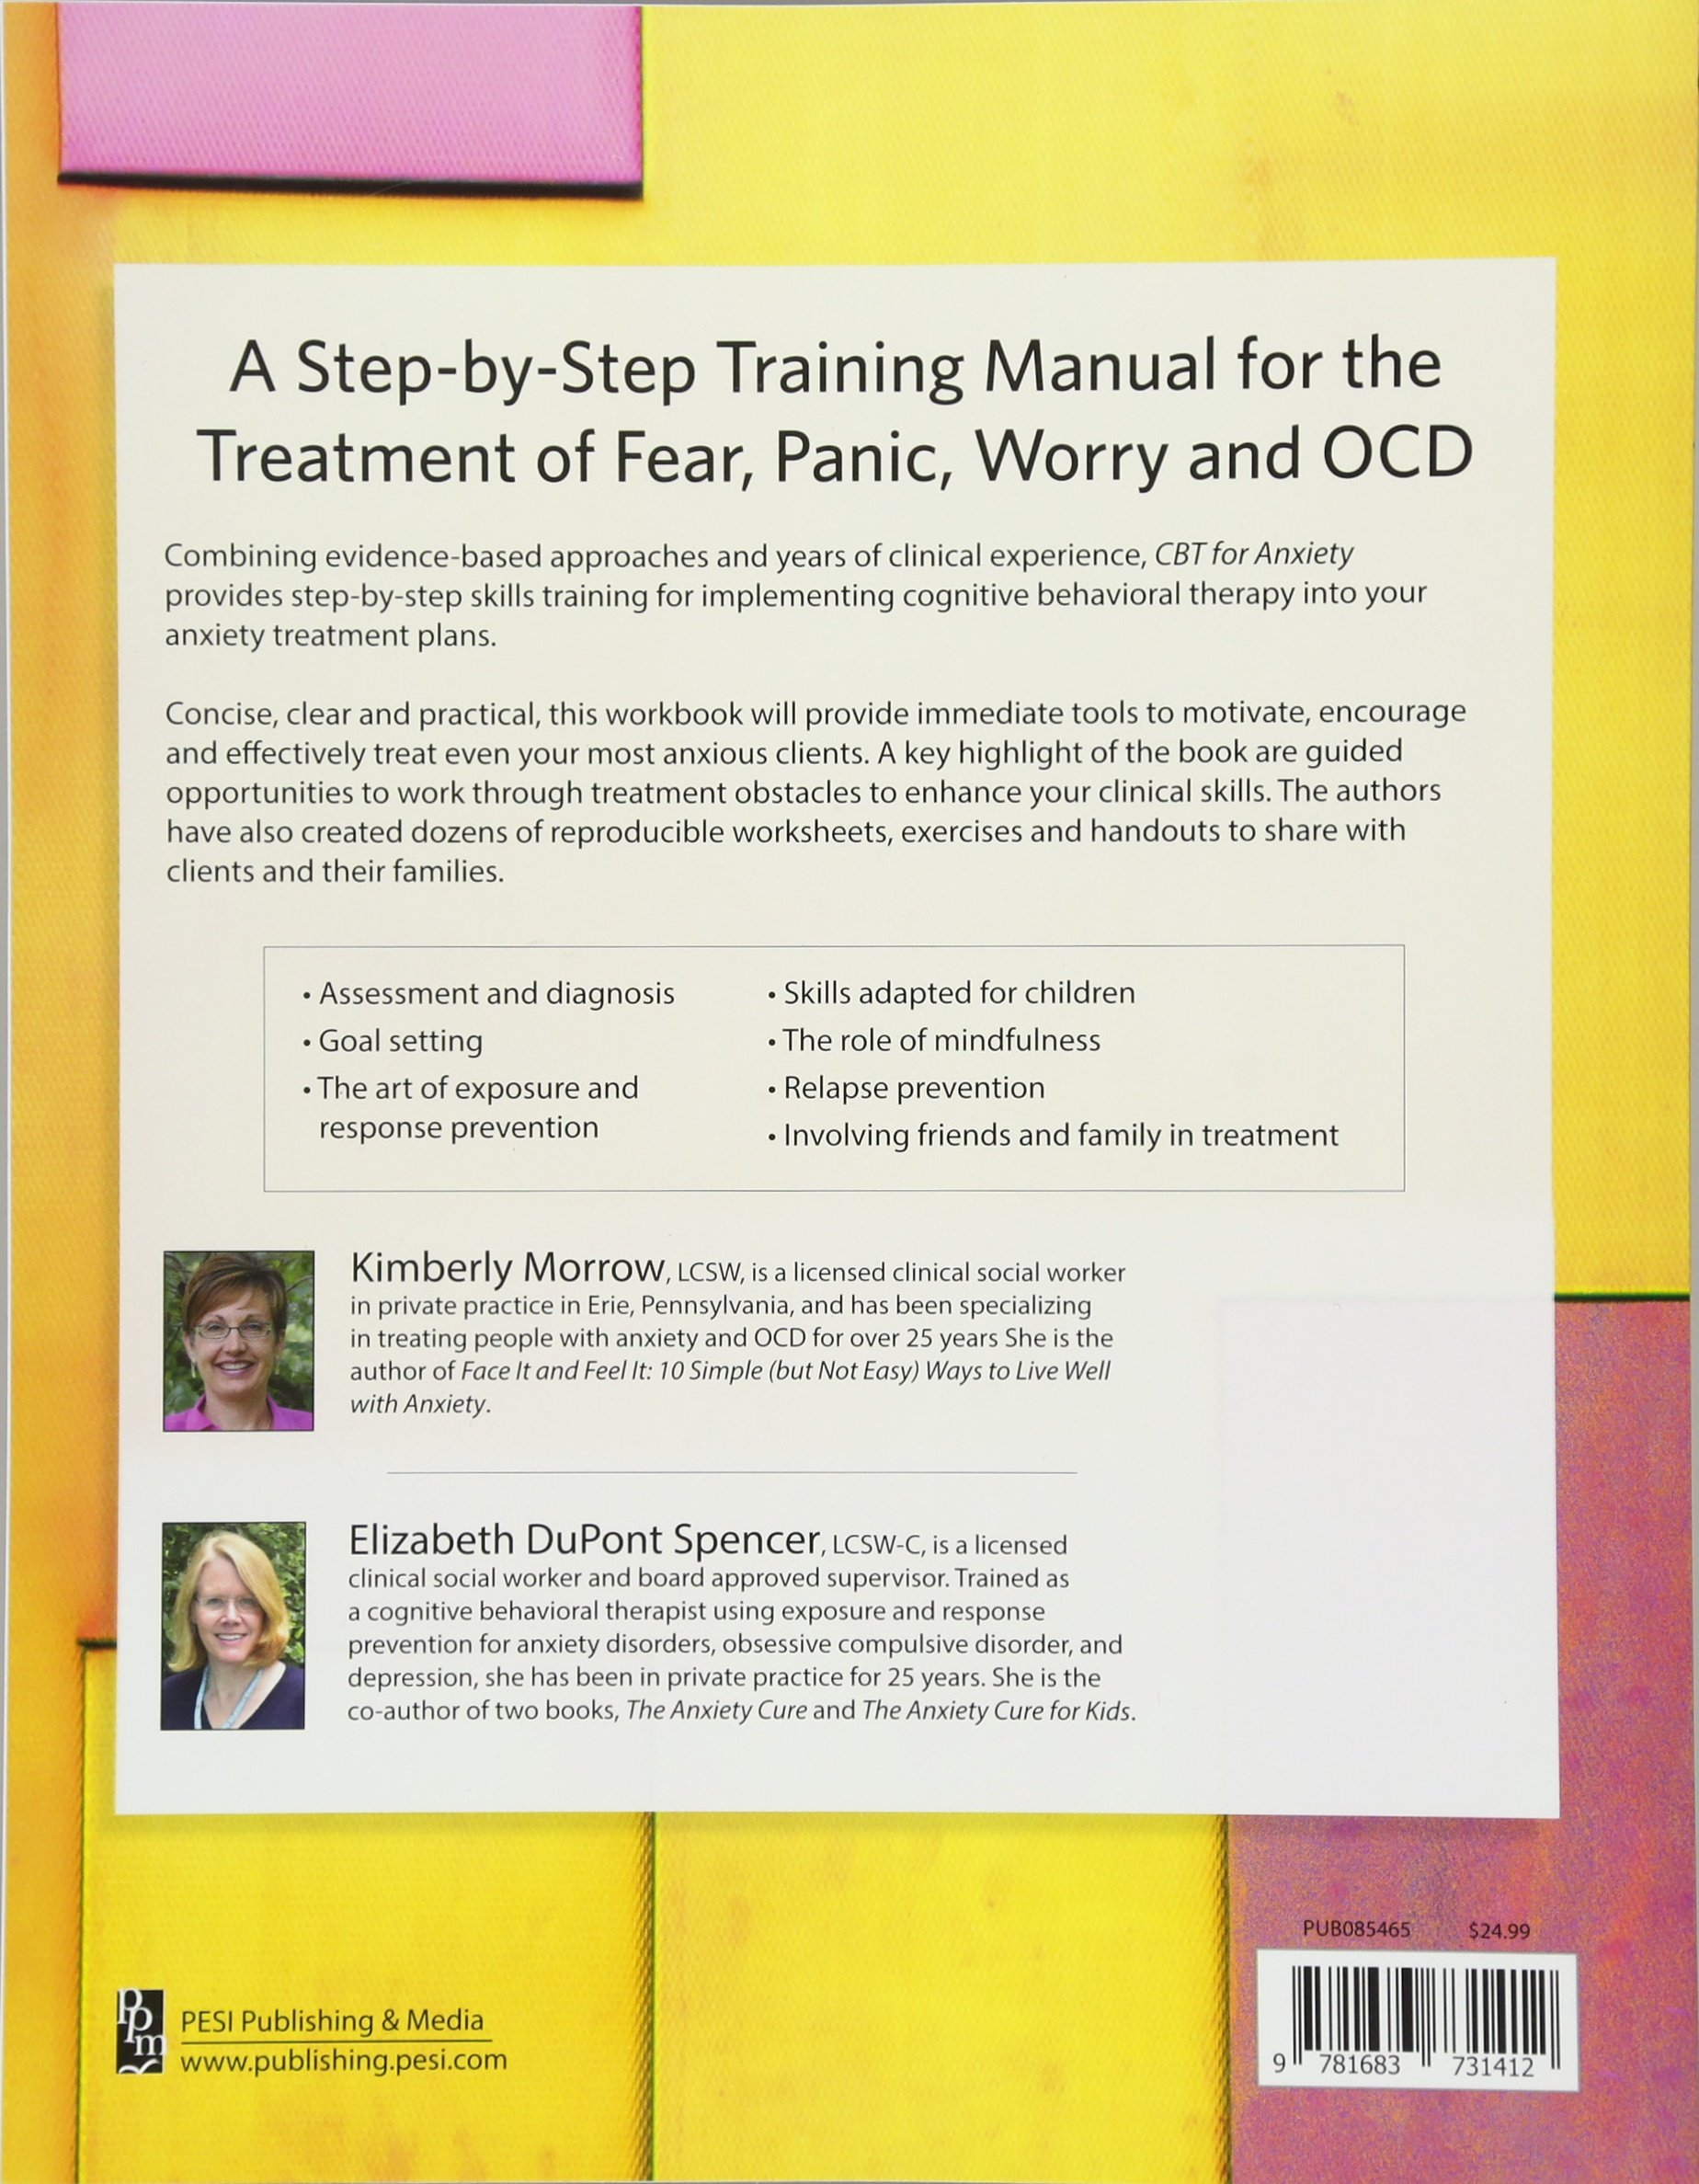 Cbt for anxiety: a step-by-step training manual for the treatment.